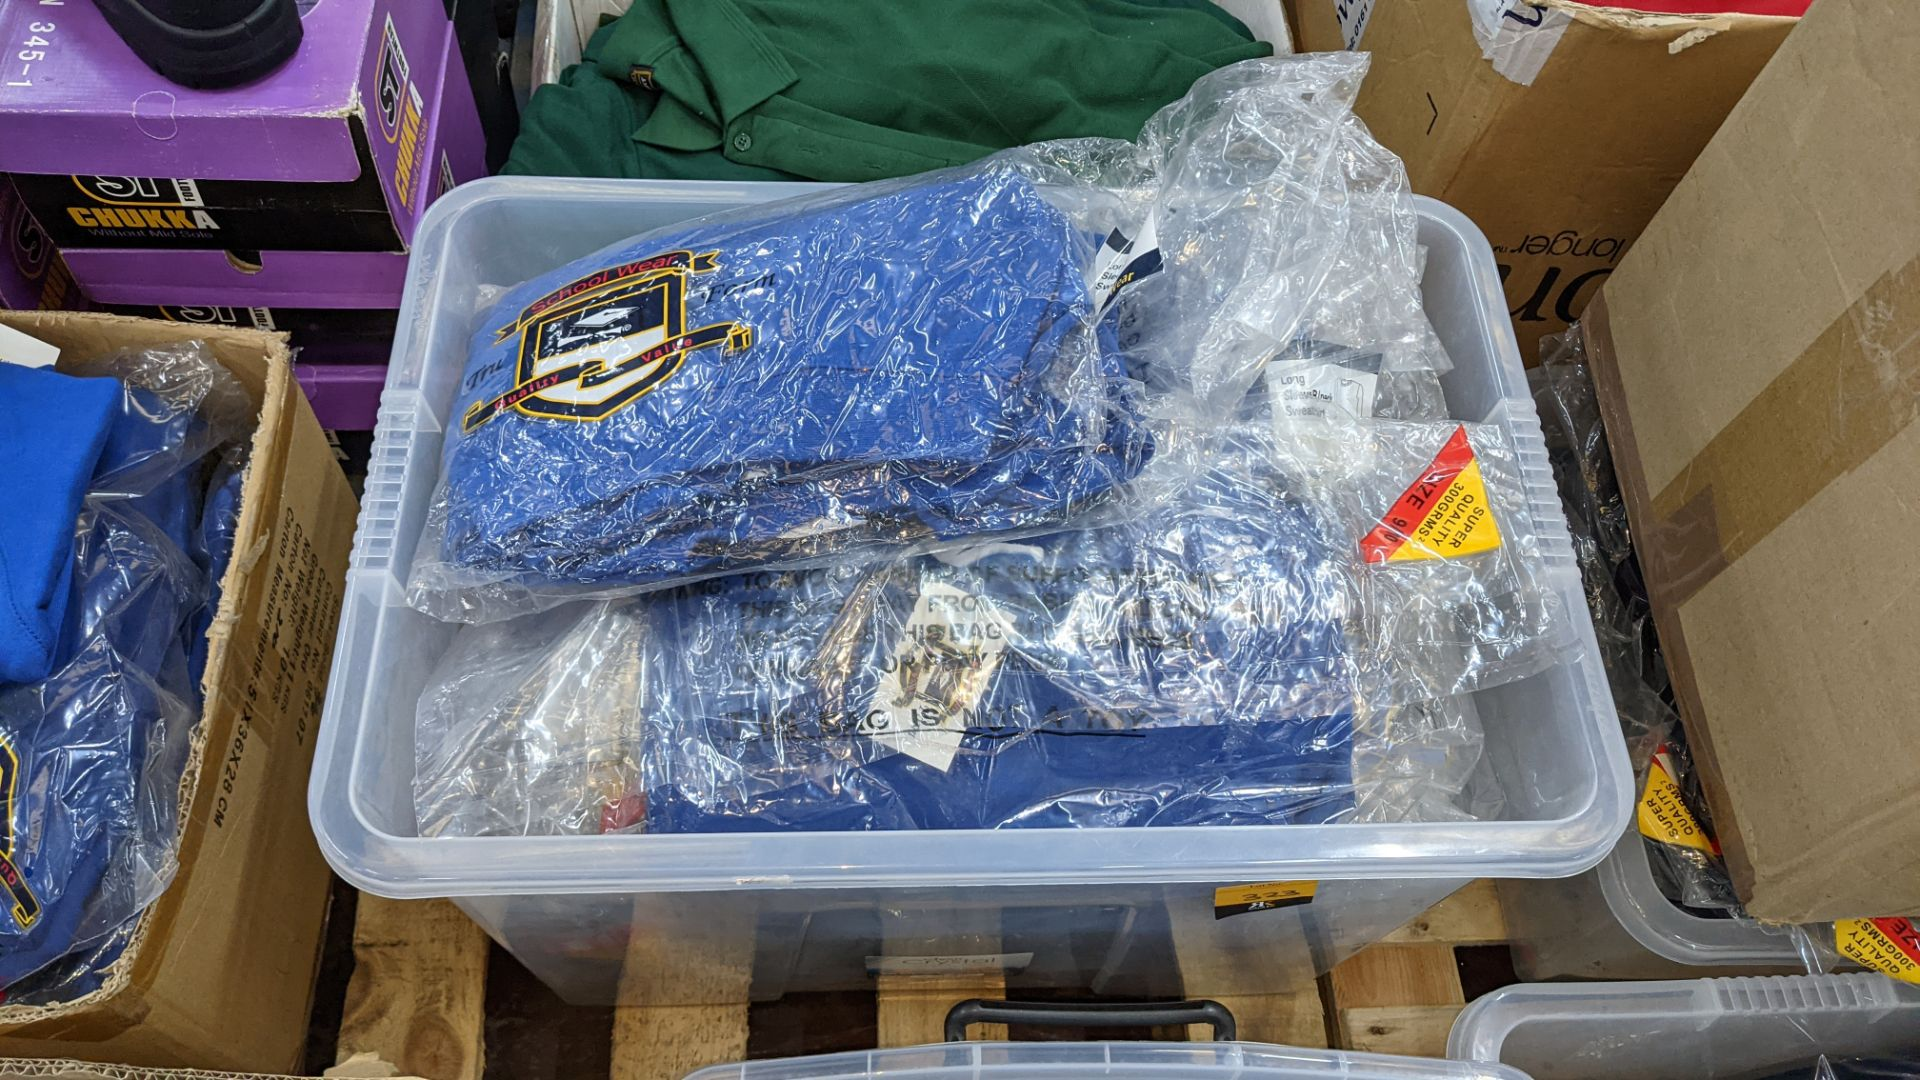 Approx 39 off blue children's sweatshirts & similar - the contents of 1 crate. NB crate excluded - Image 2 of 5